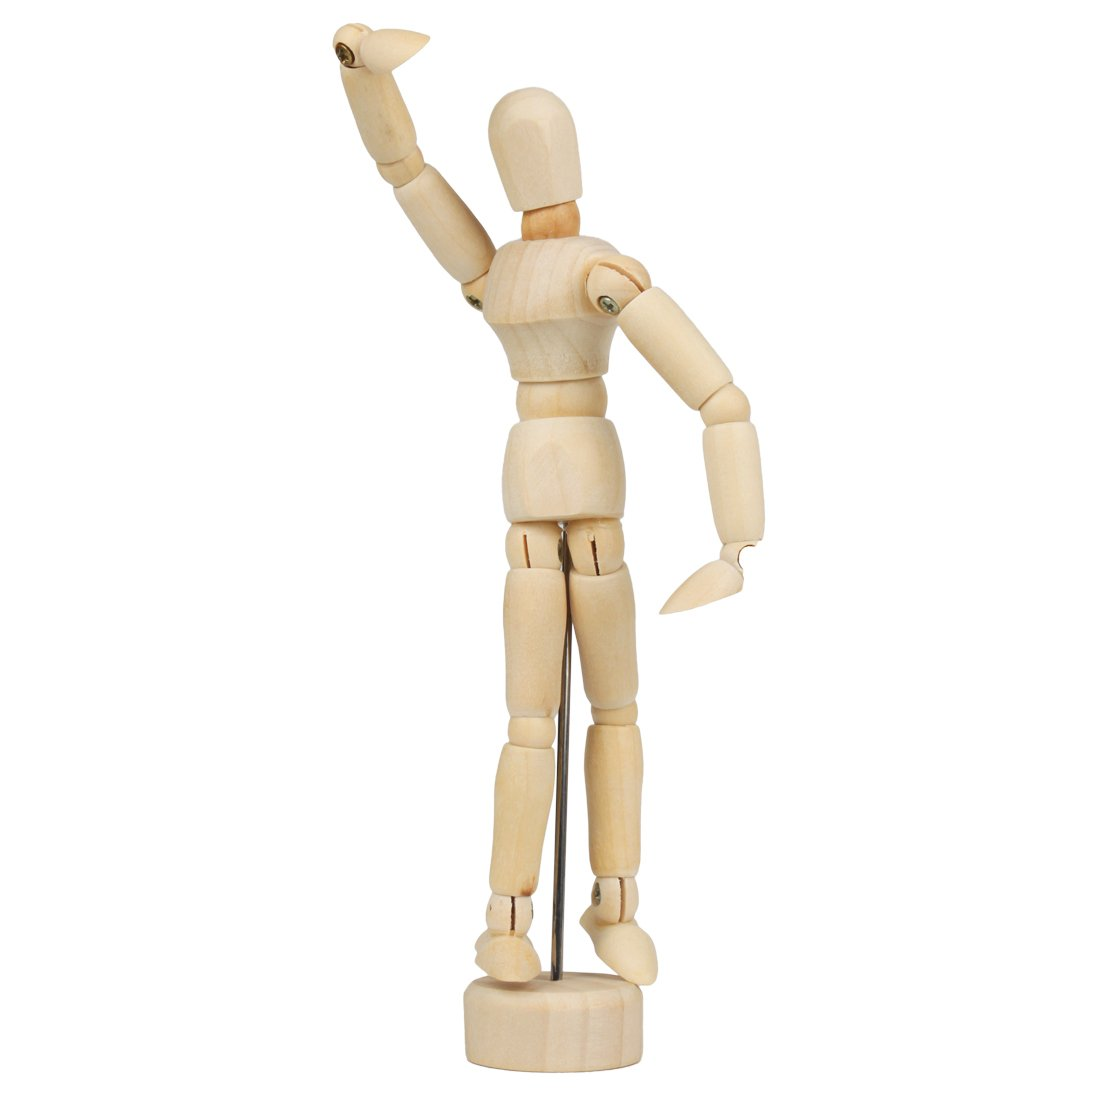 PP-NEST Wooden Human Joints Mannequins MRMX-01 (15.3cm)